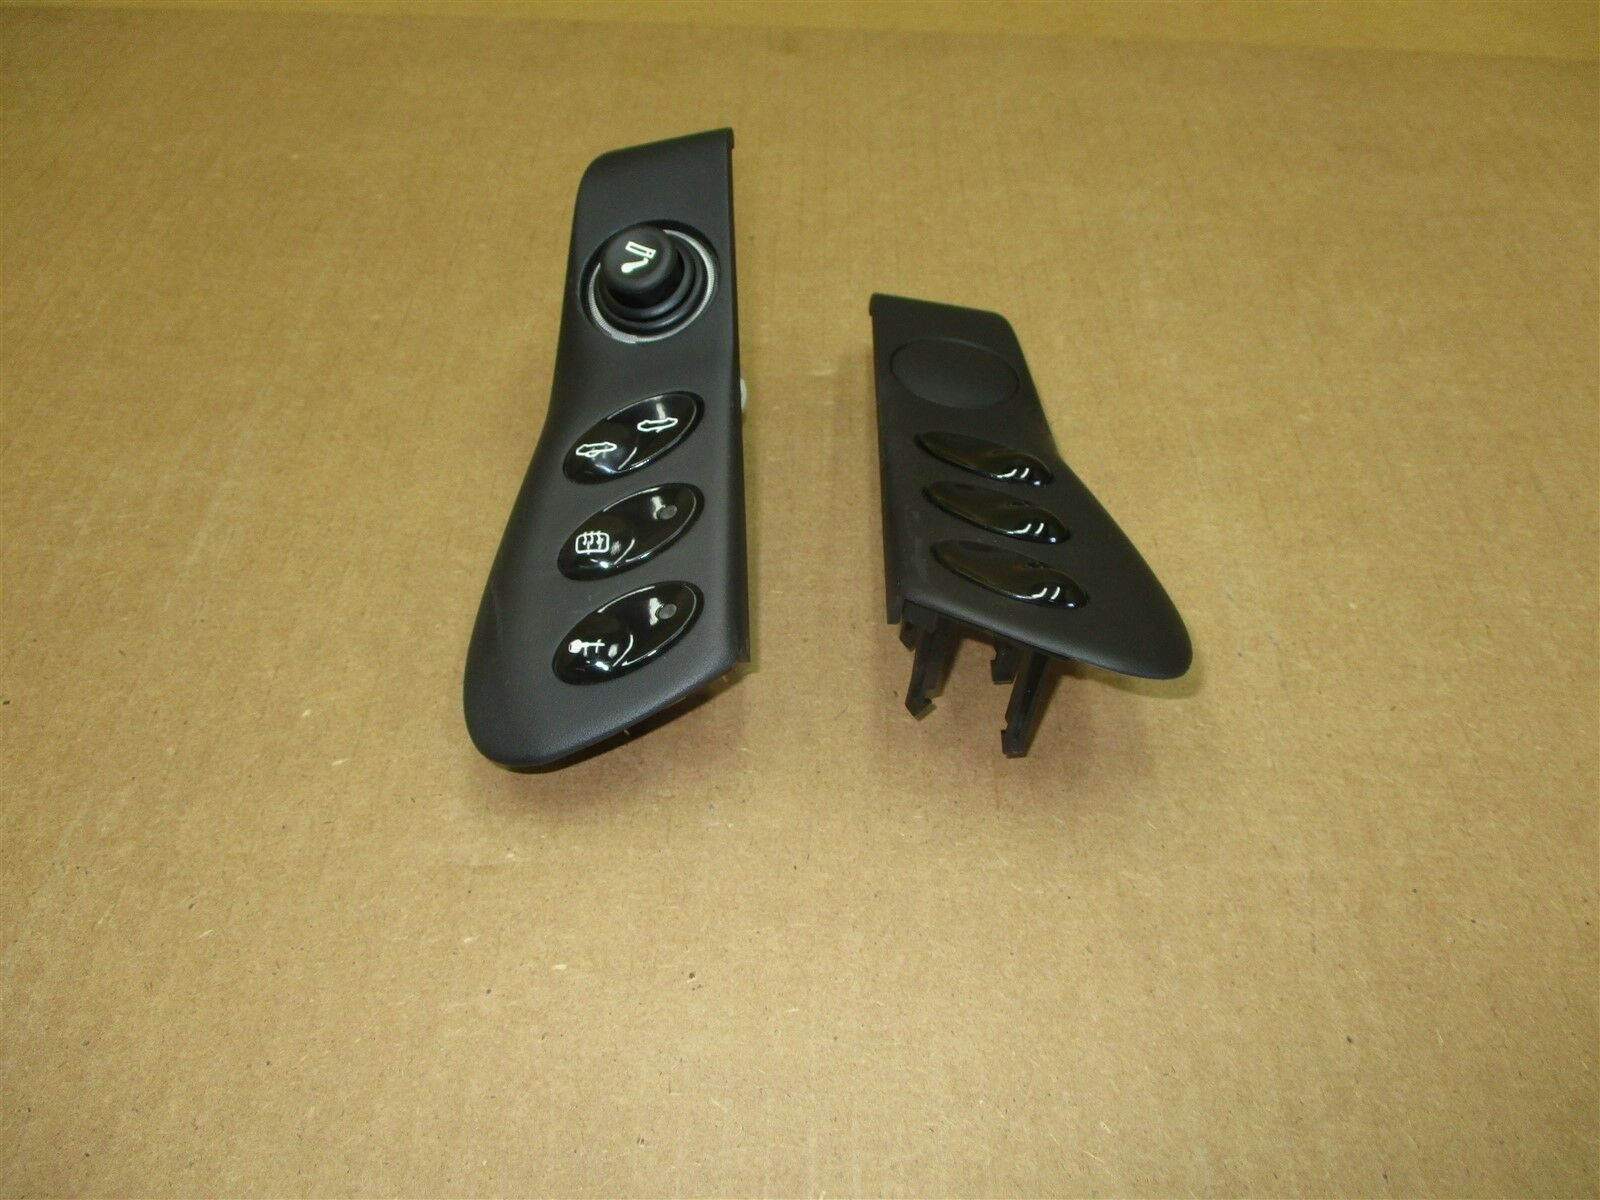 00 Boxster Porsche 986 L R CONSOLE TRIMS SWITCHES 98655223300 98655223400 34,093